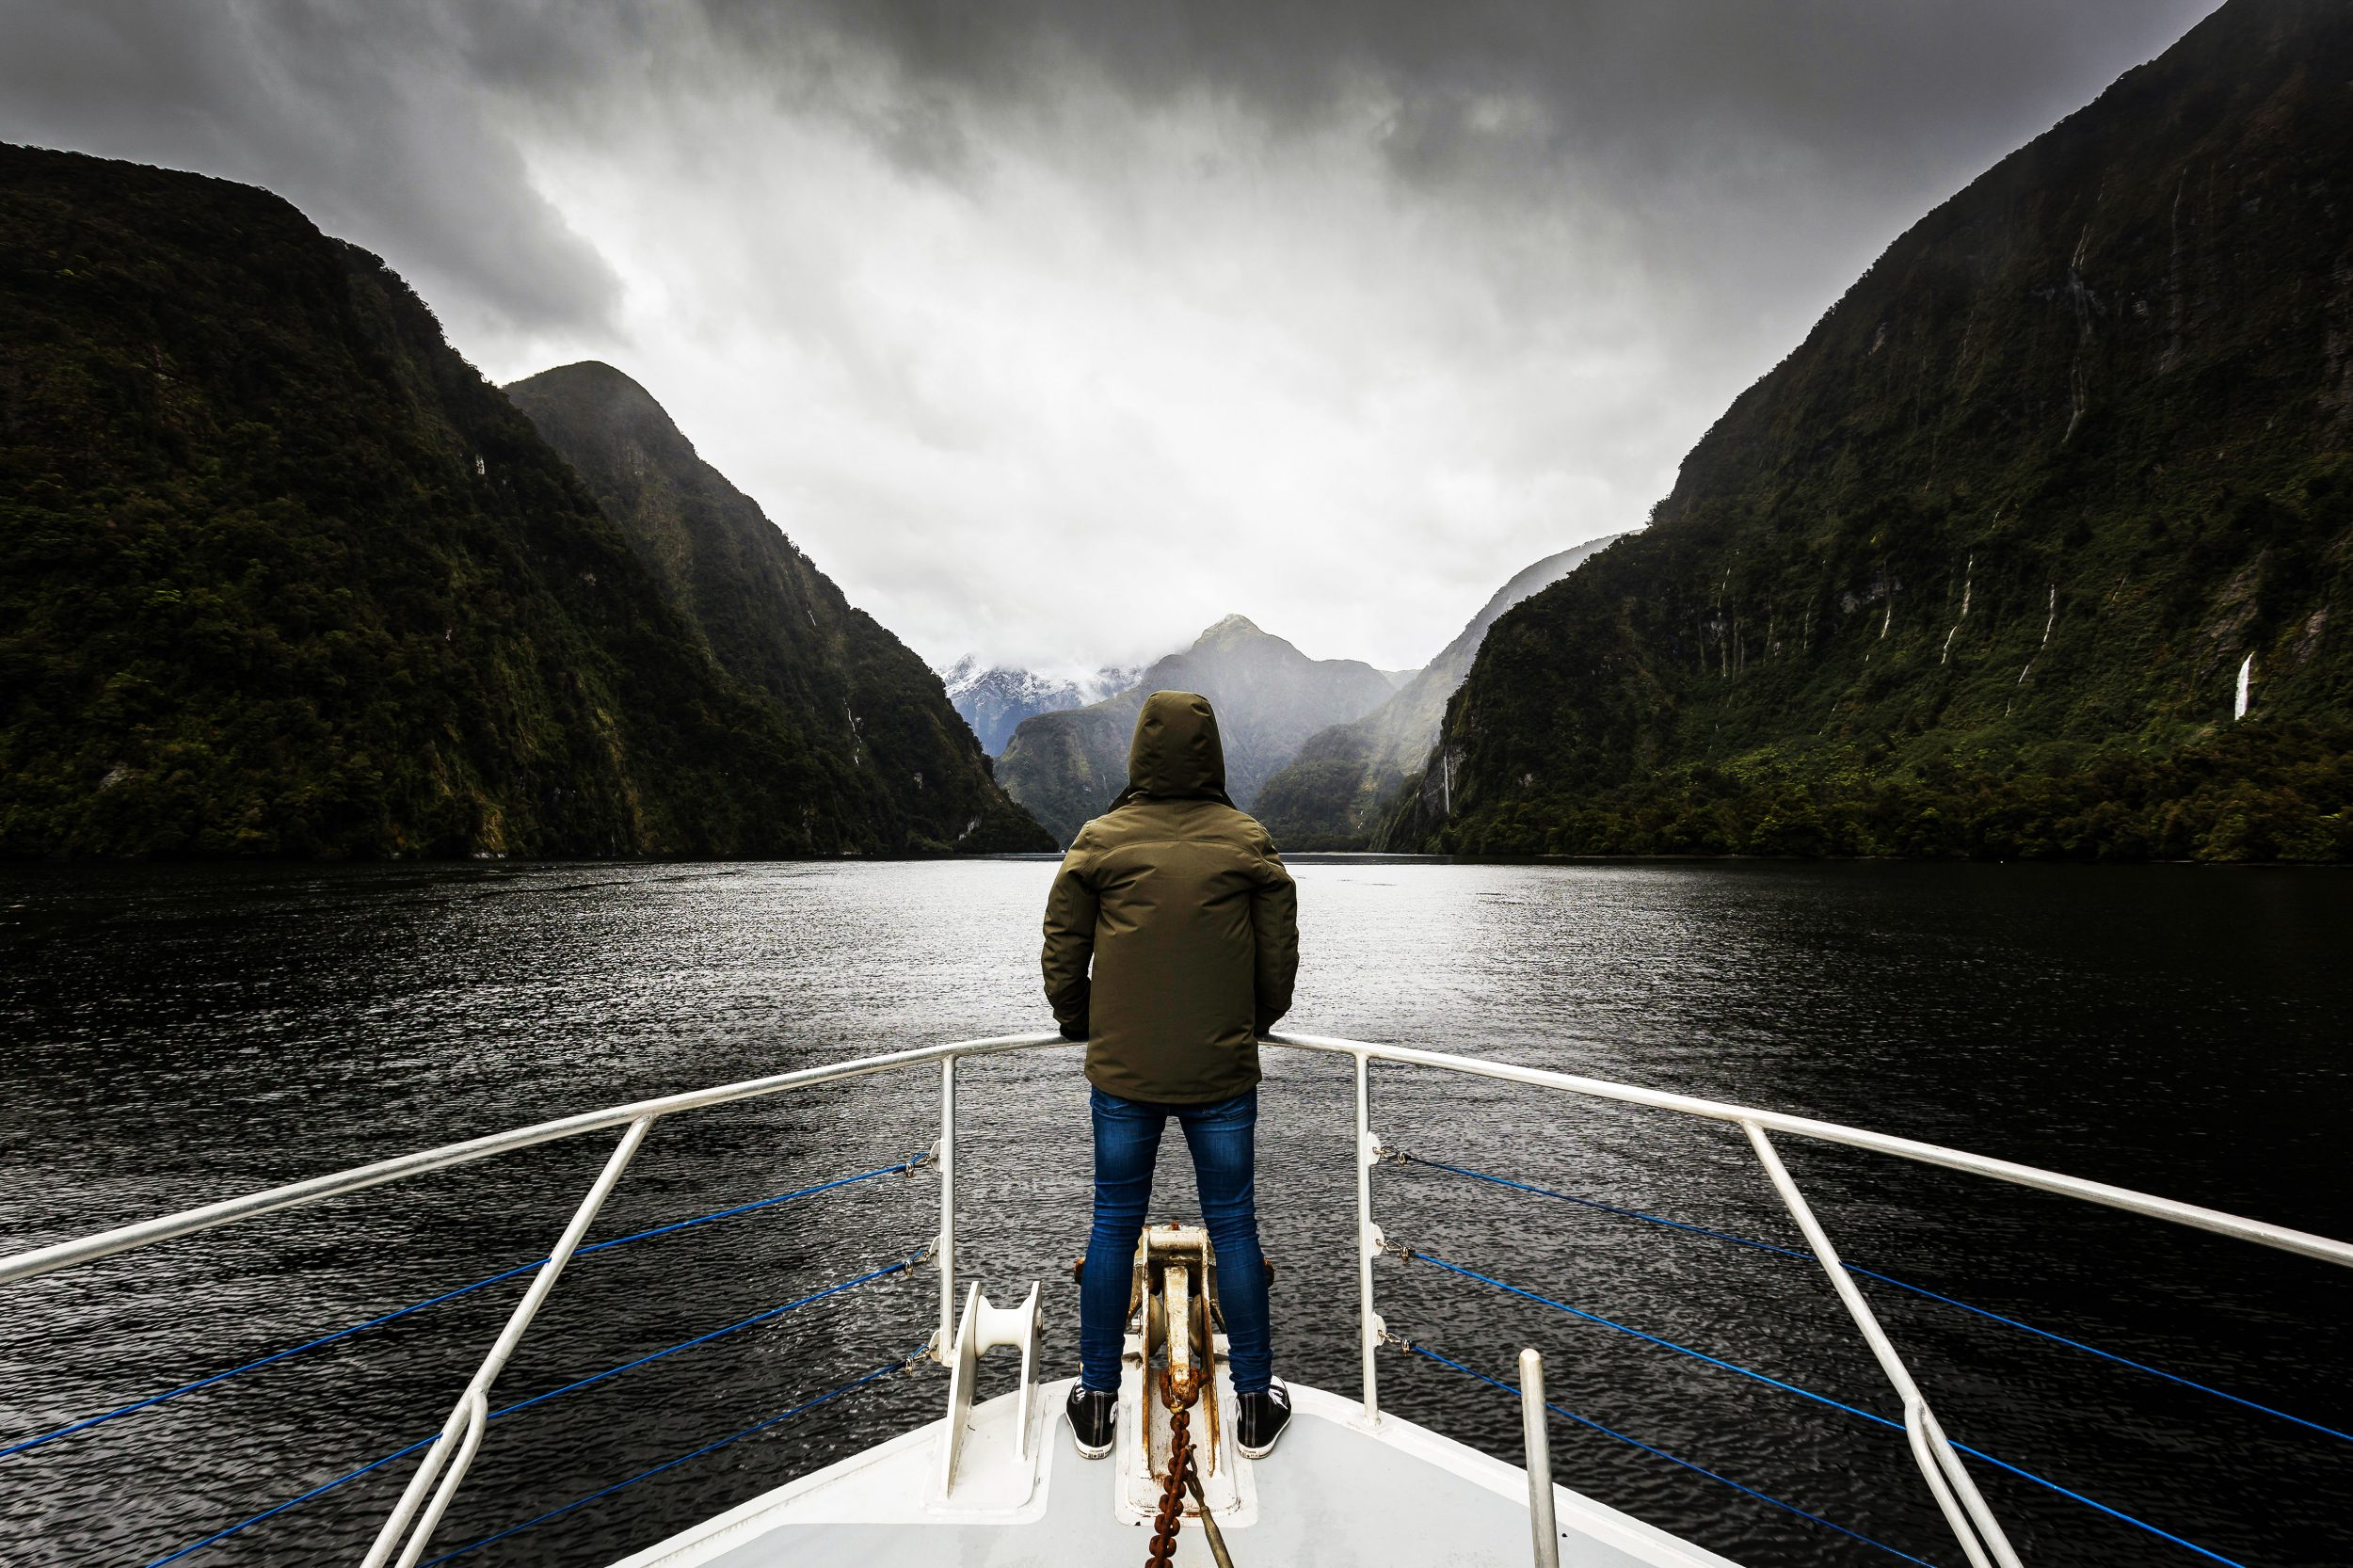 A boat cruise, Doubtful Sound, New Zealand